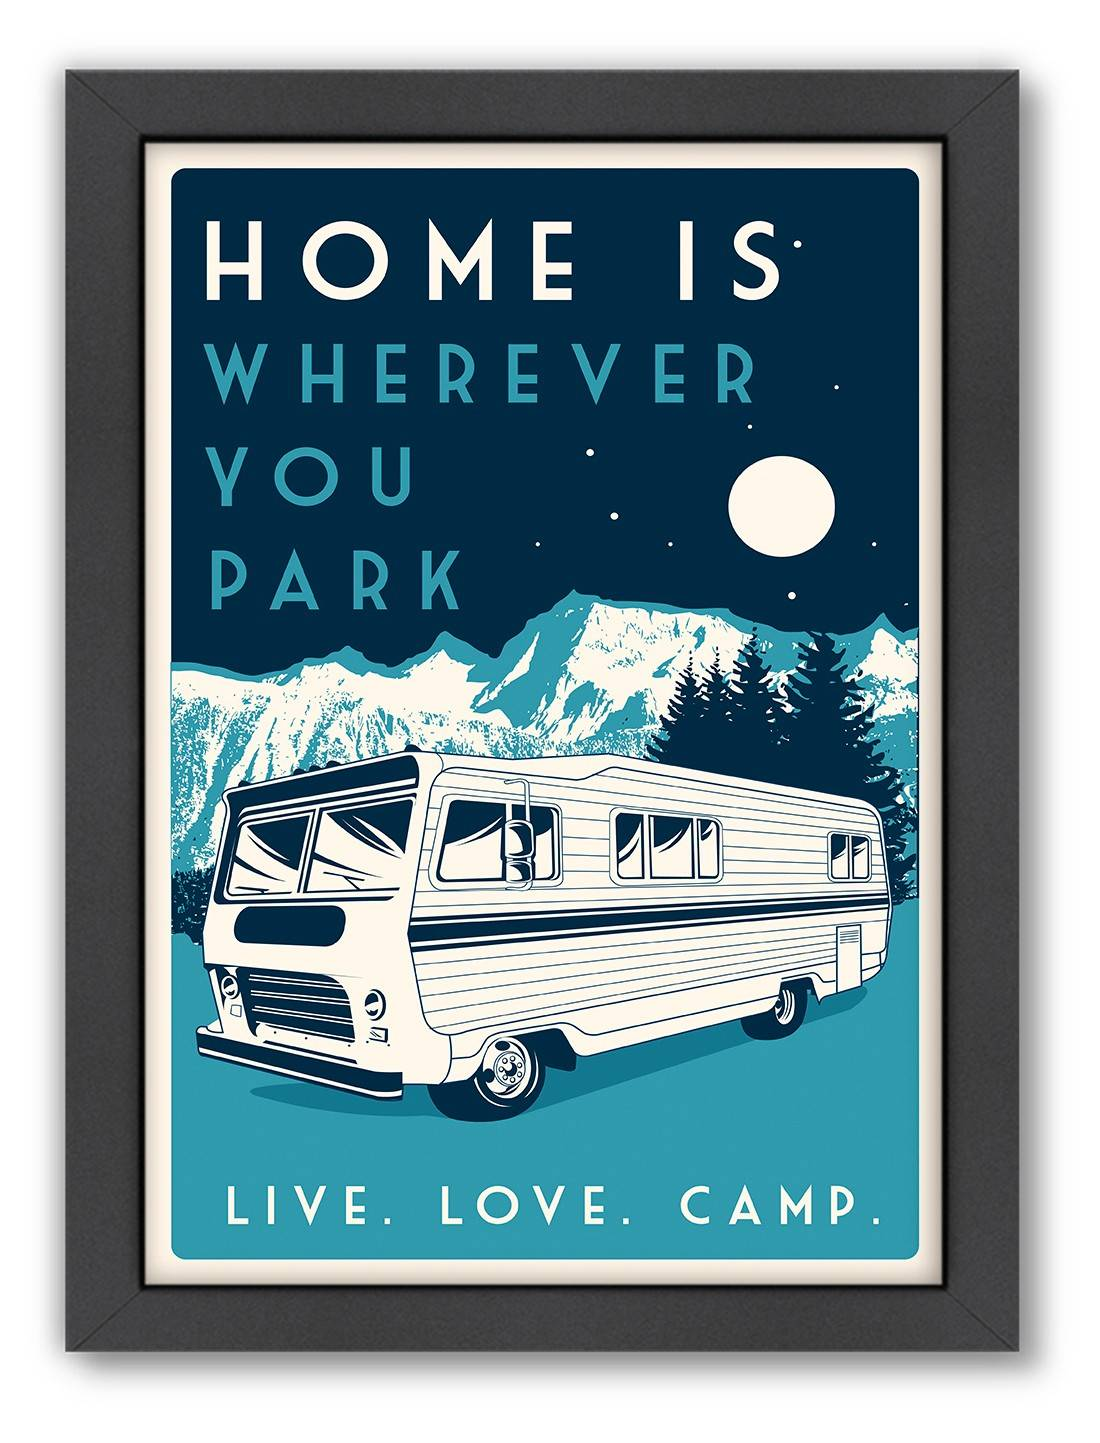 Matthew Schnepf's print of an RV embraces the road trip aesthetic inherent in this retro decor style. Similar styles available at www.onekingslane.com.